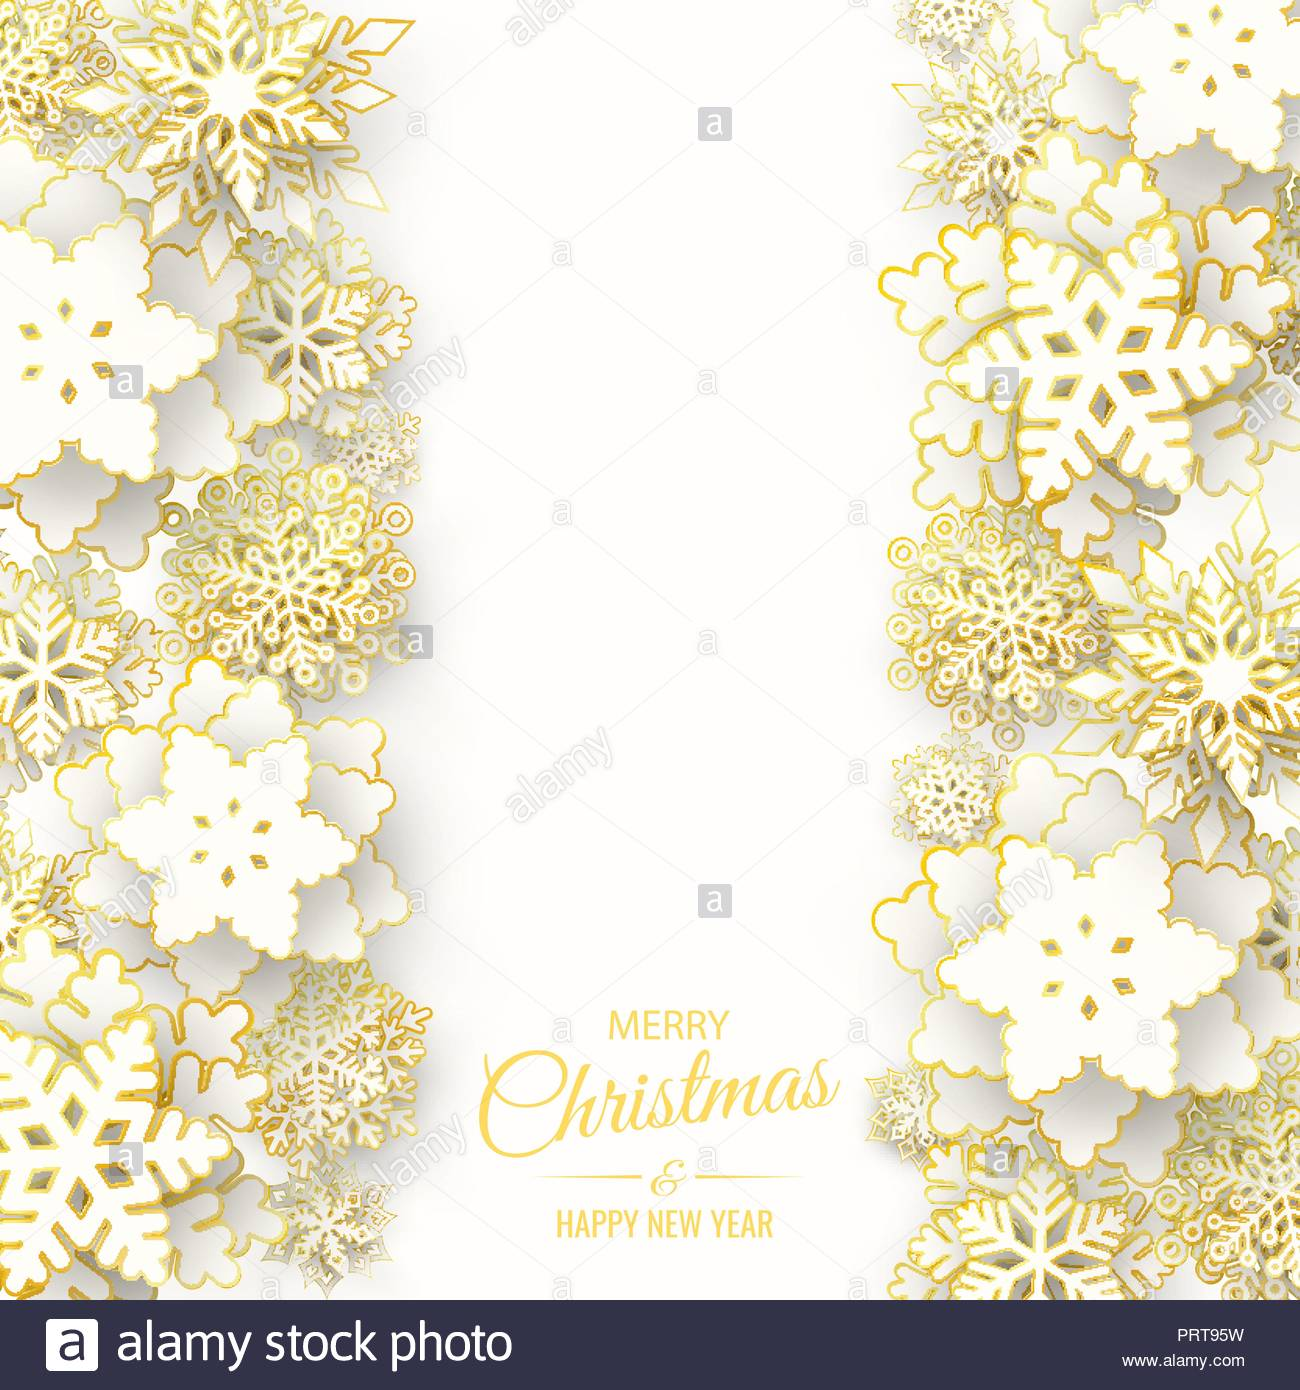 vector merry christmas and happy new year greeting card design with 3d white and gold layered paper cut snowflakes on white background seasonal chris